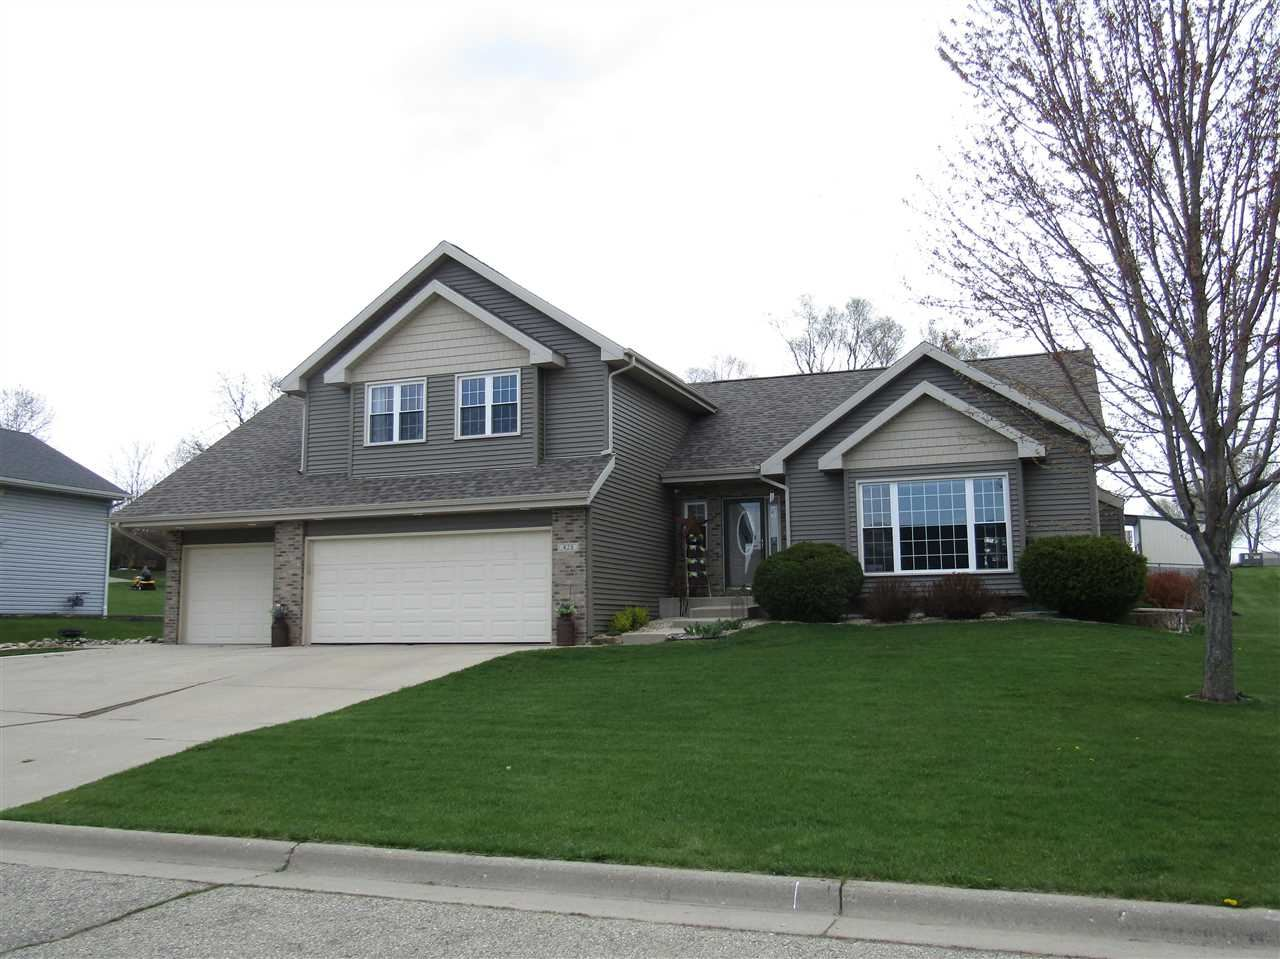 428 Willow Springs Ct., Janesville, WI 53548 - #: 1906812